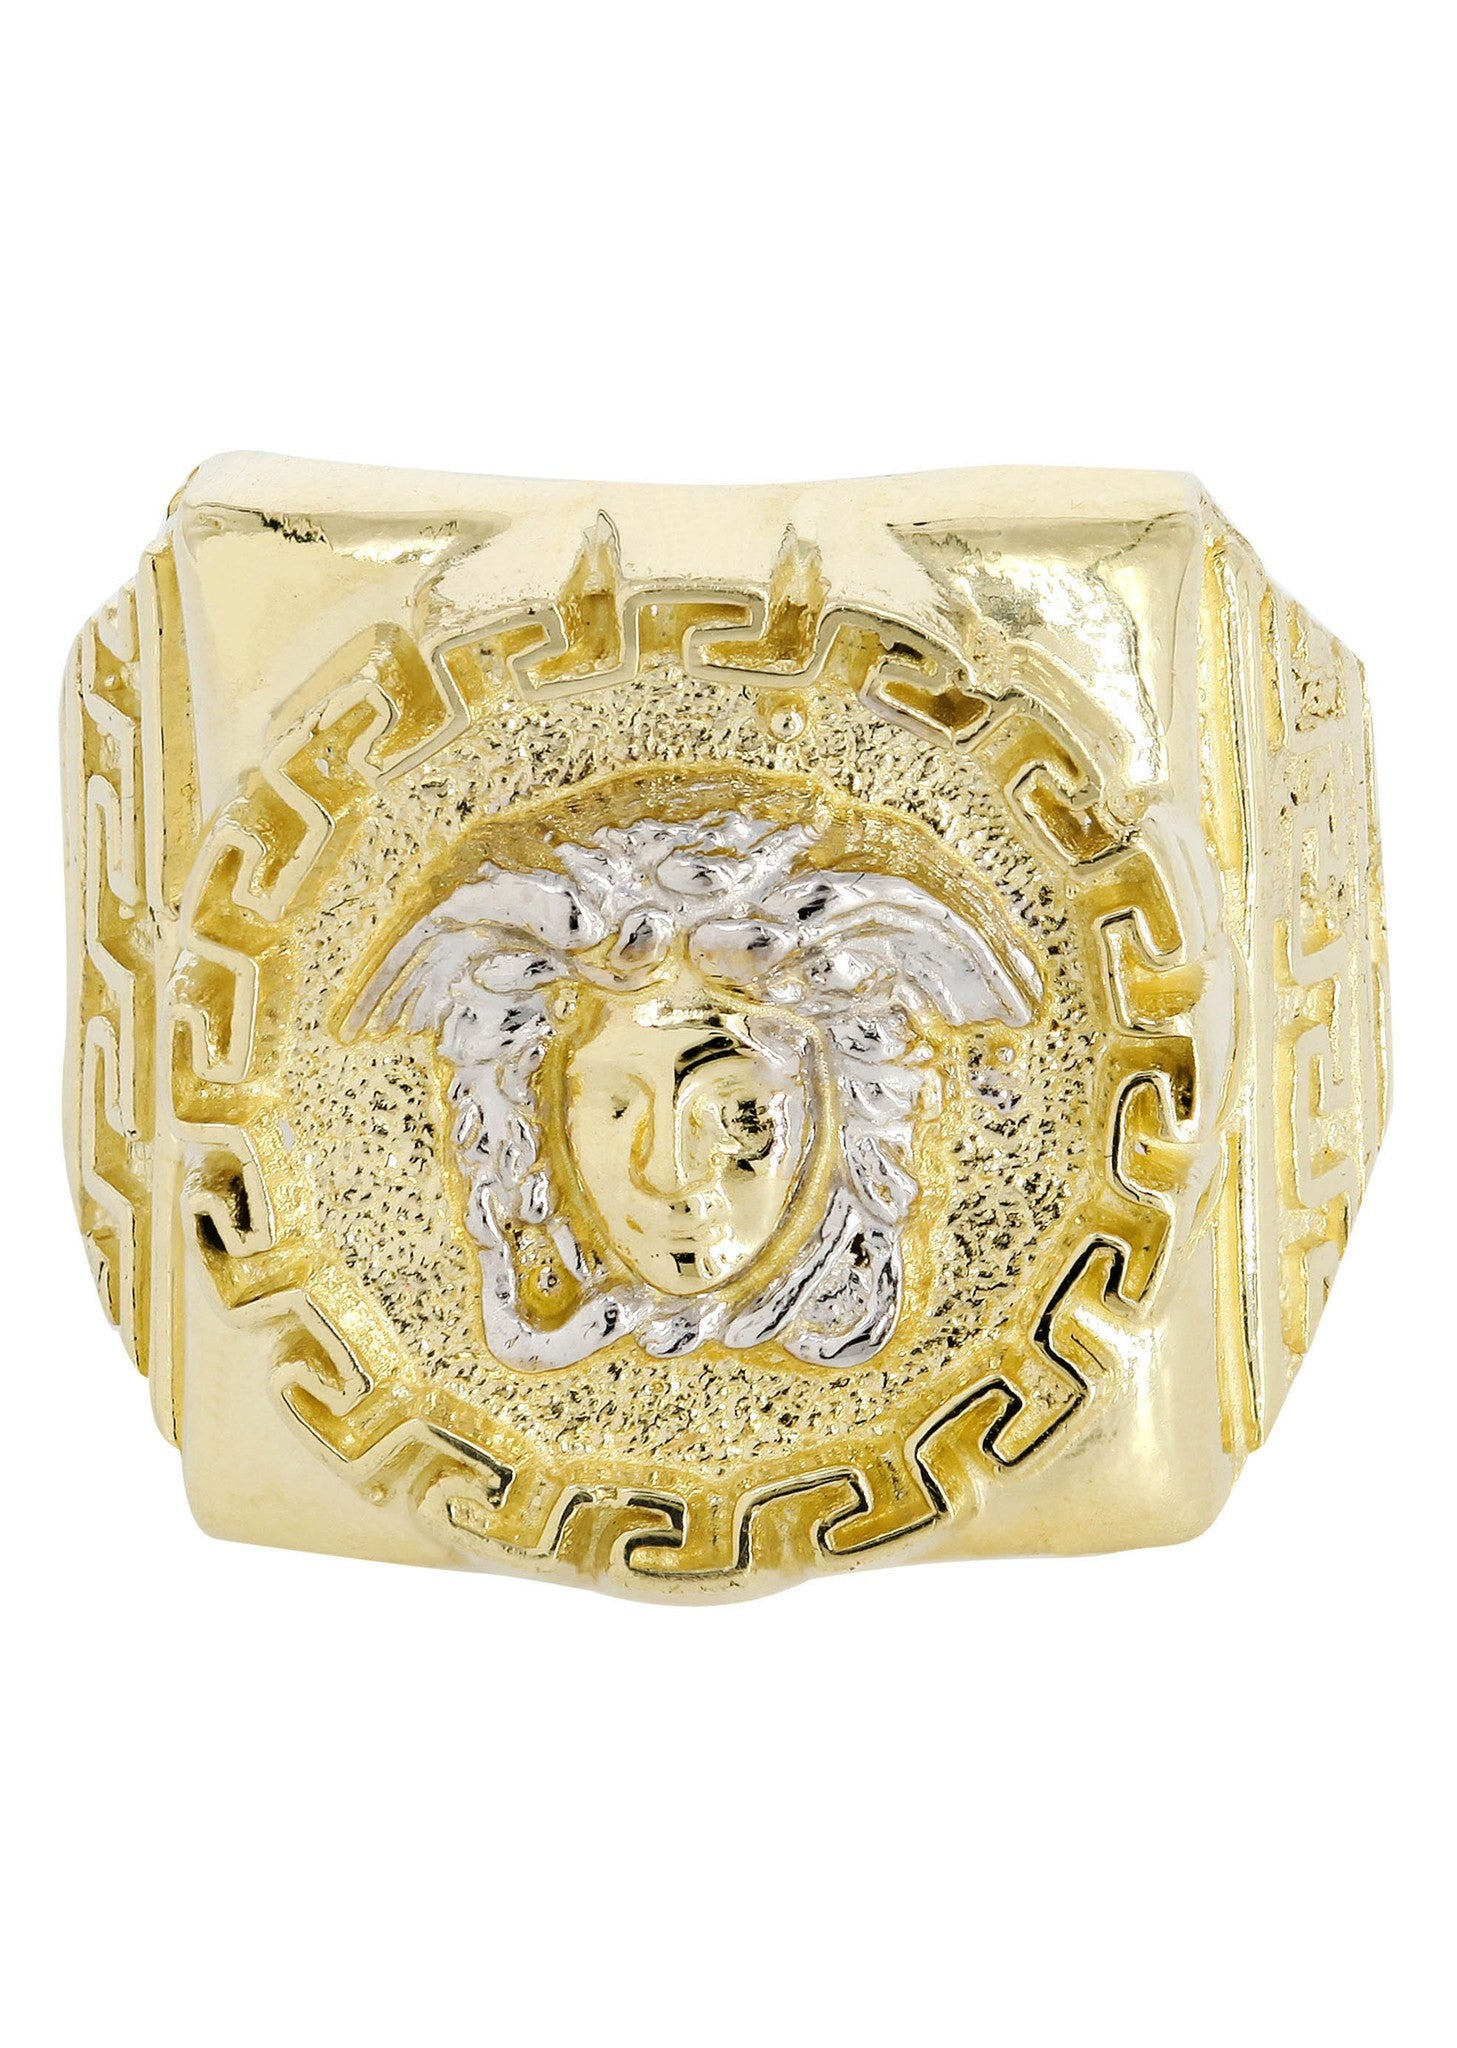 10k yellow gold versace style mens ring 6 5 grams for 10k gold jewelry